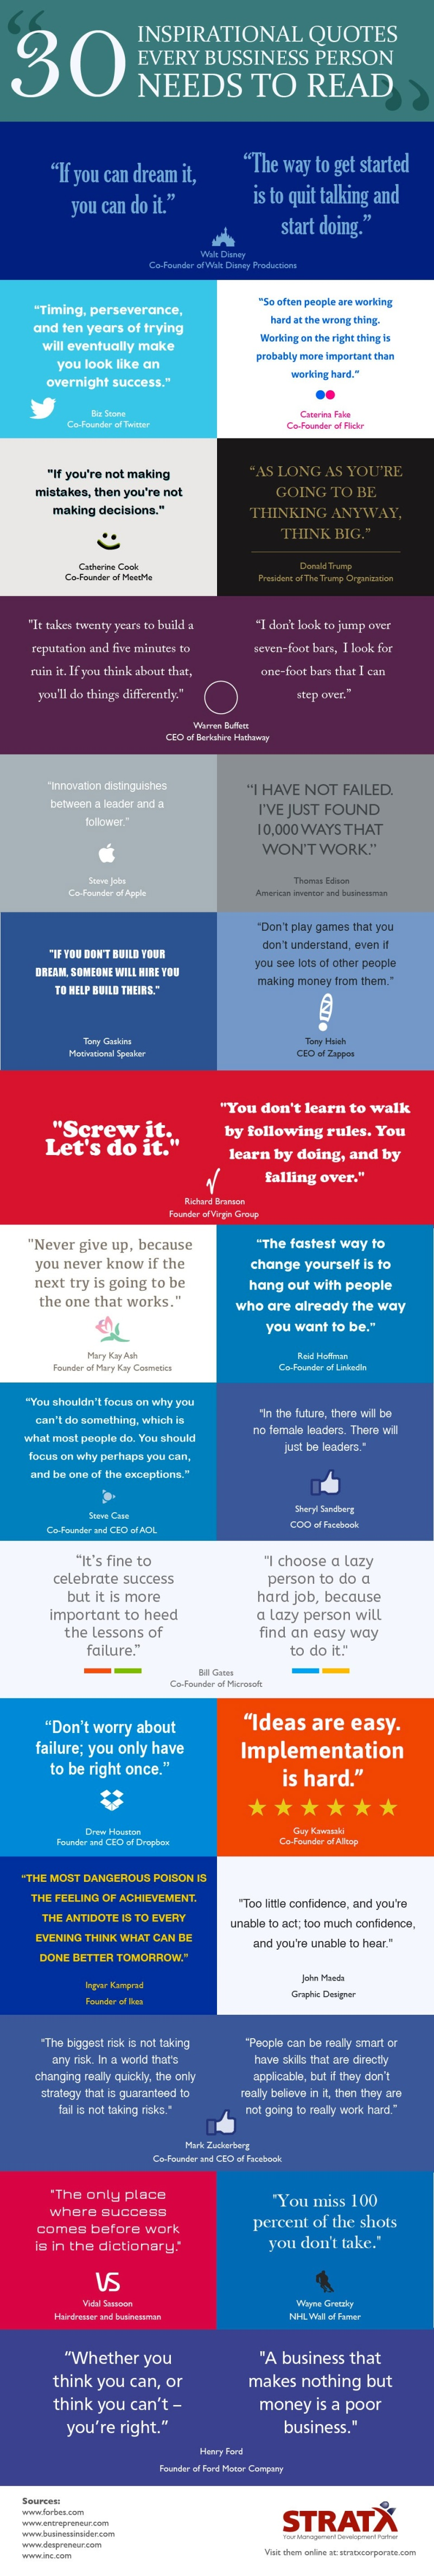 Inspiring Quotes for Entrepreneurs